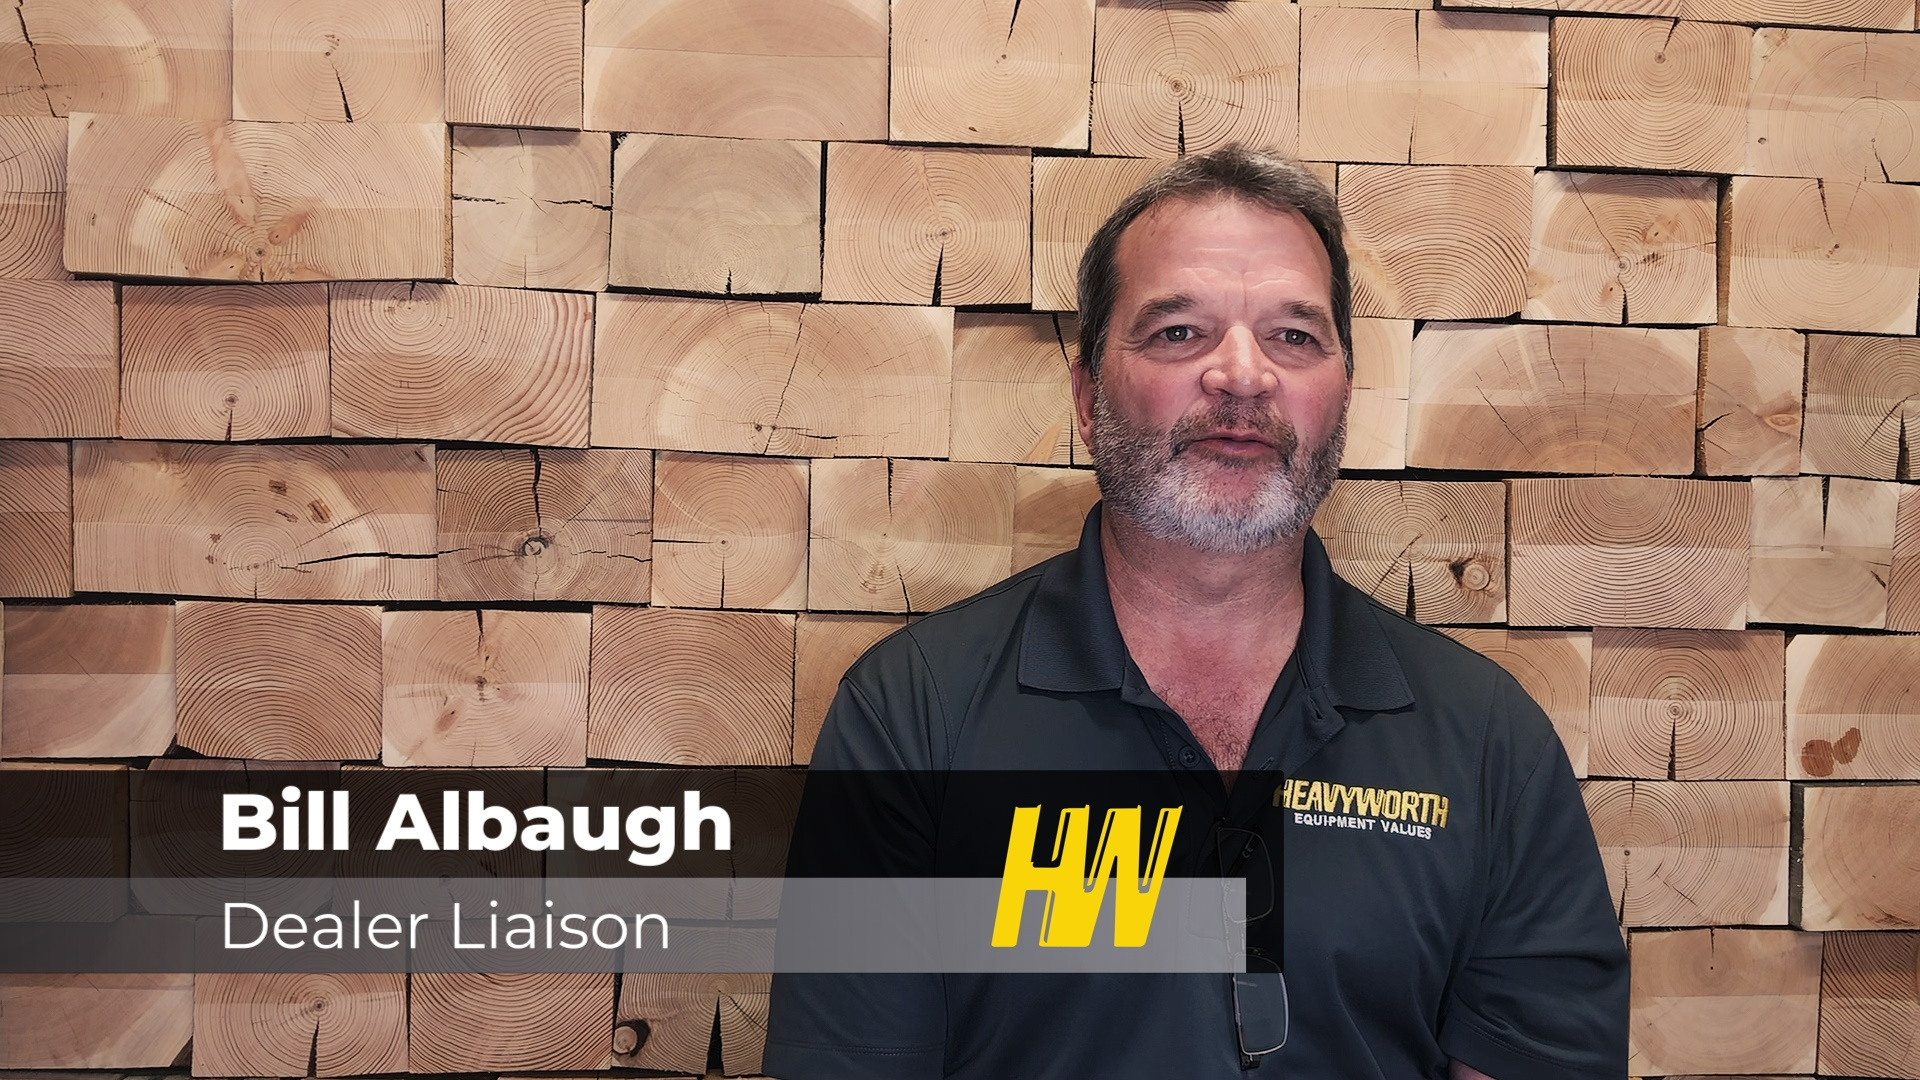 Bill Albaugh explains why it's rare for a dealership to sell a piece of ag or construction equipment for the advertised retail price.